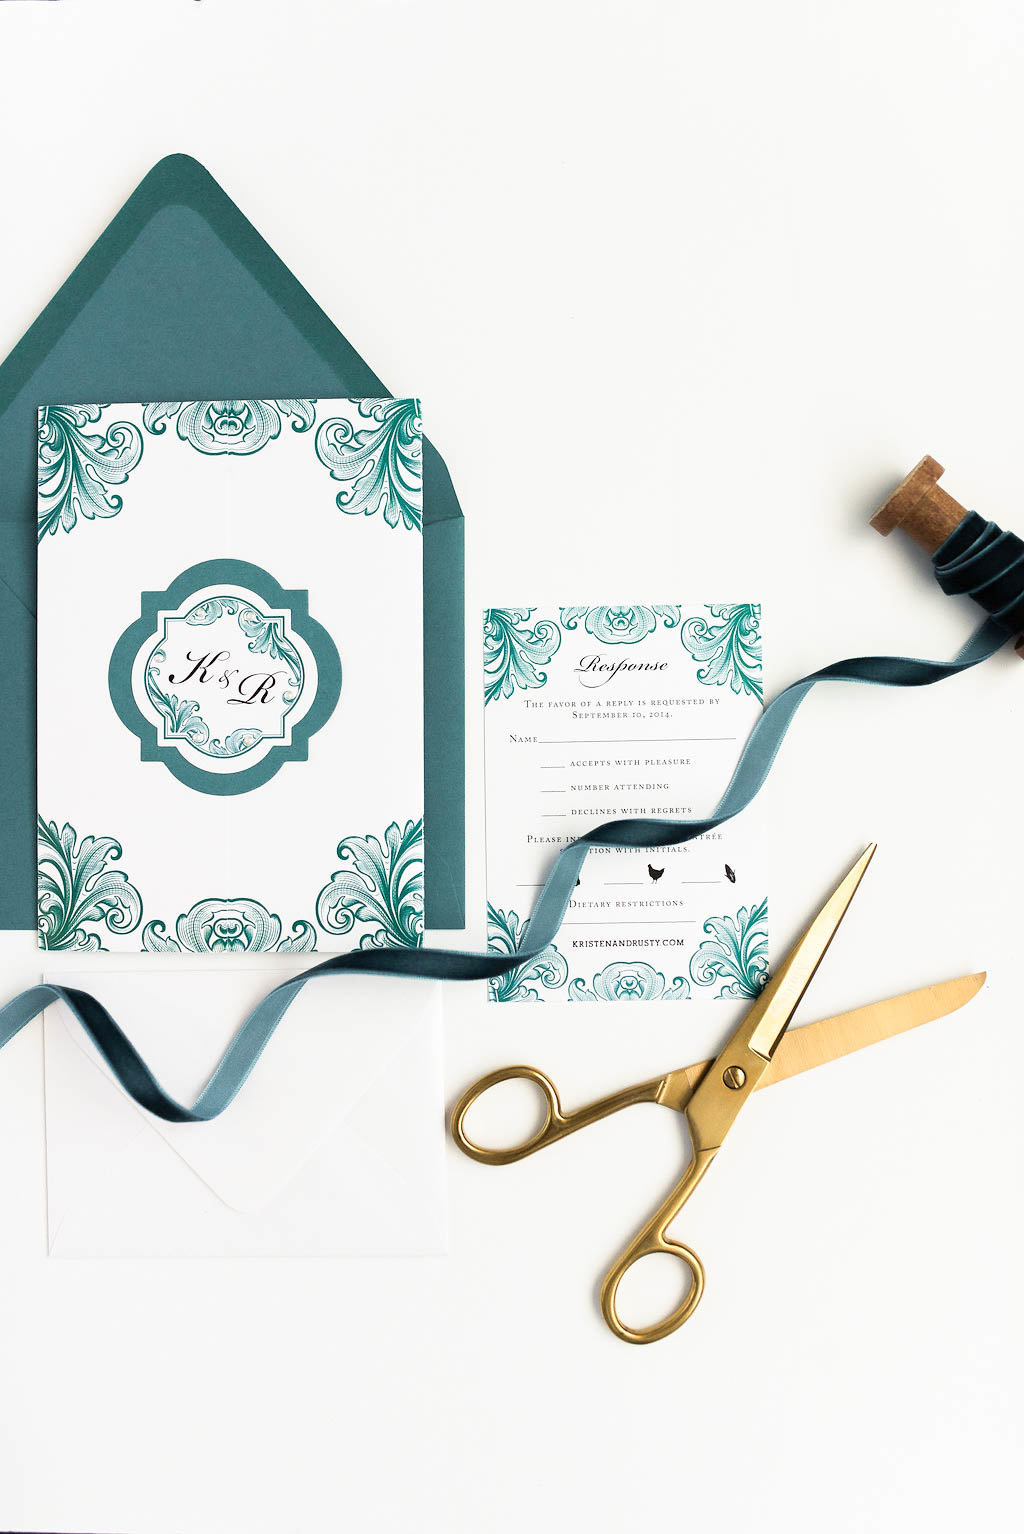 Melissa Arey - Hello Invite Design Studio - Photo -0692